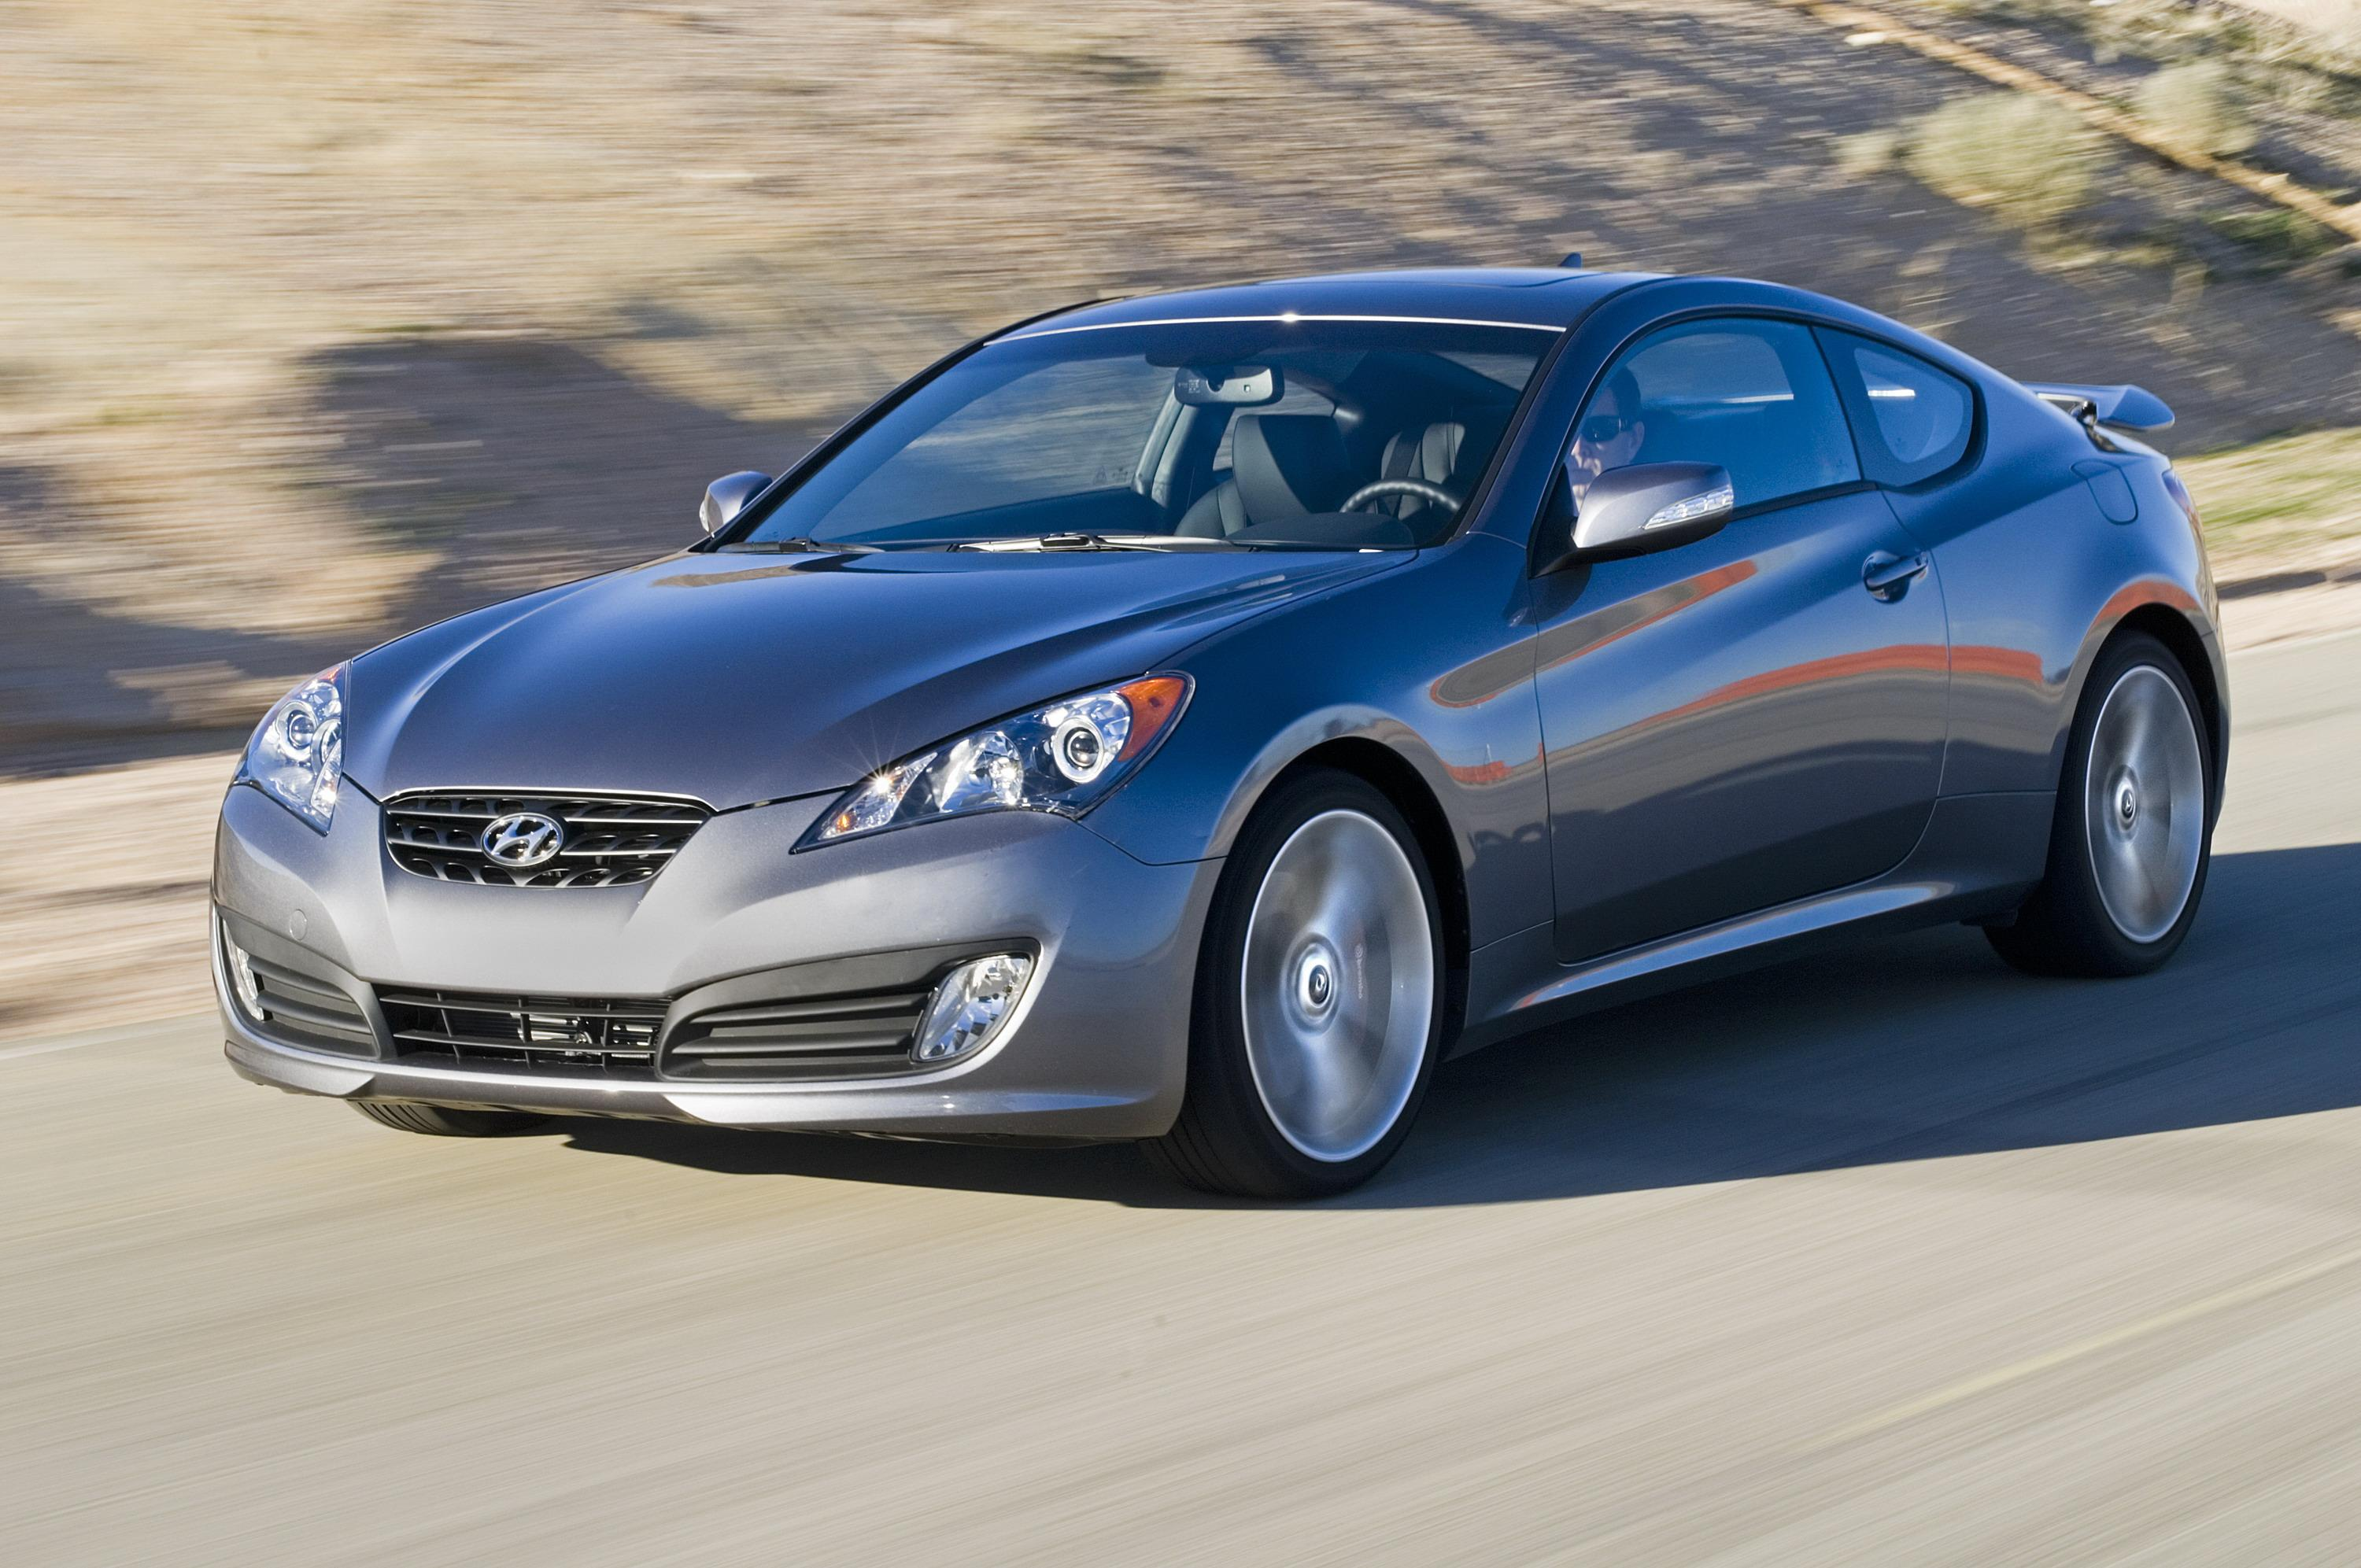 2010 hyundai genesis coupe pricing announced news top speed. Black Bedroom Furniture Sets. Home Design Ideas